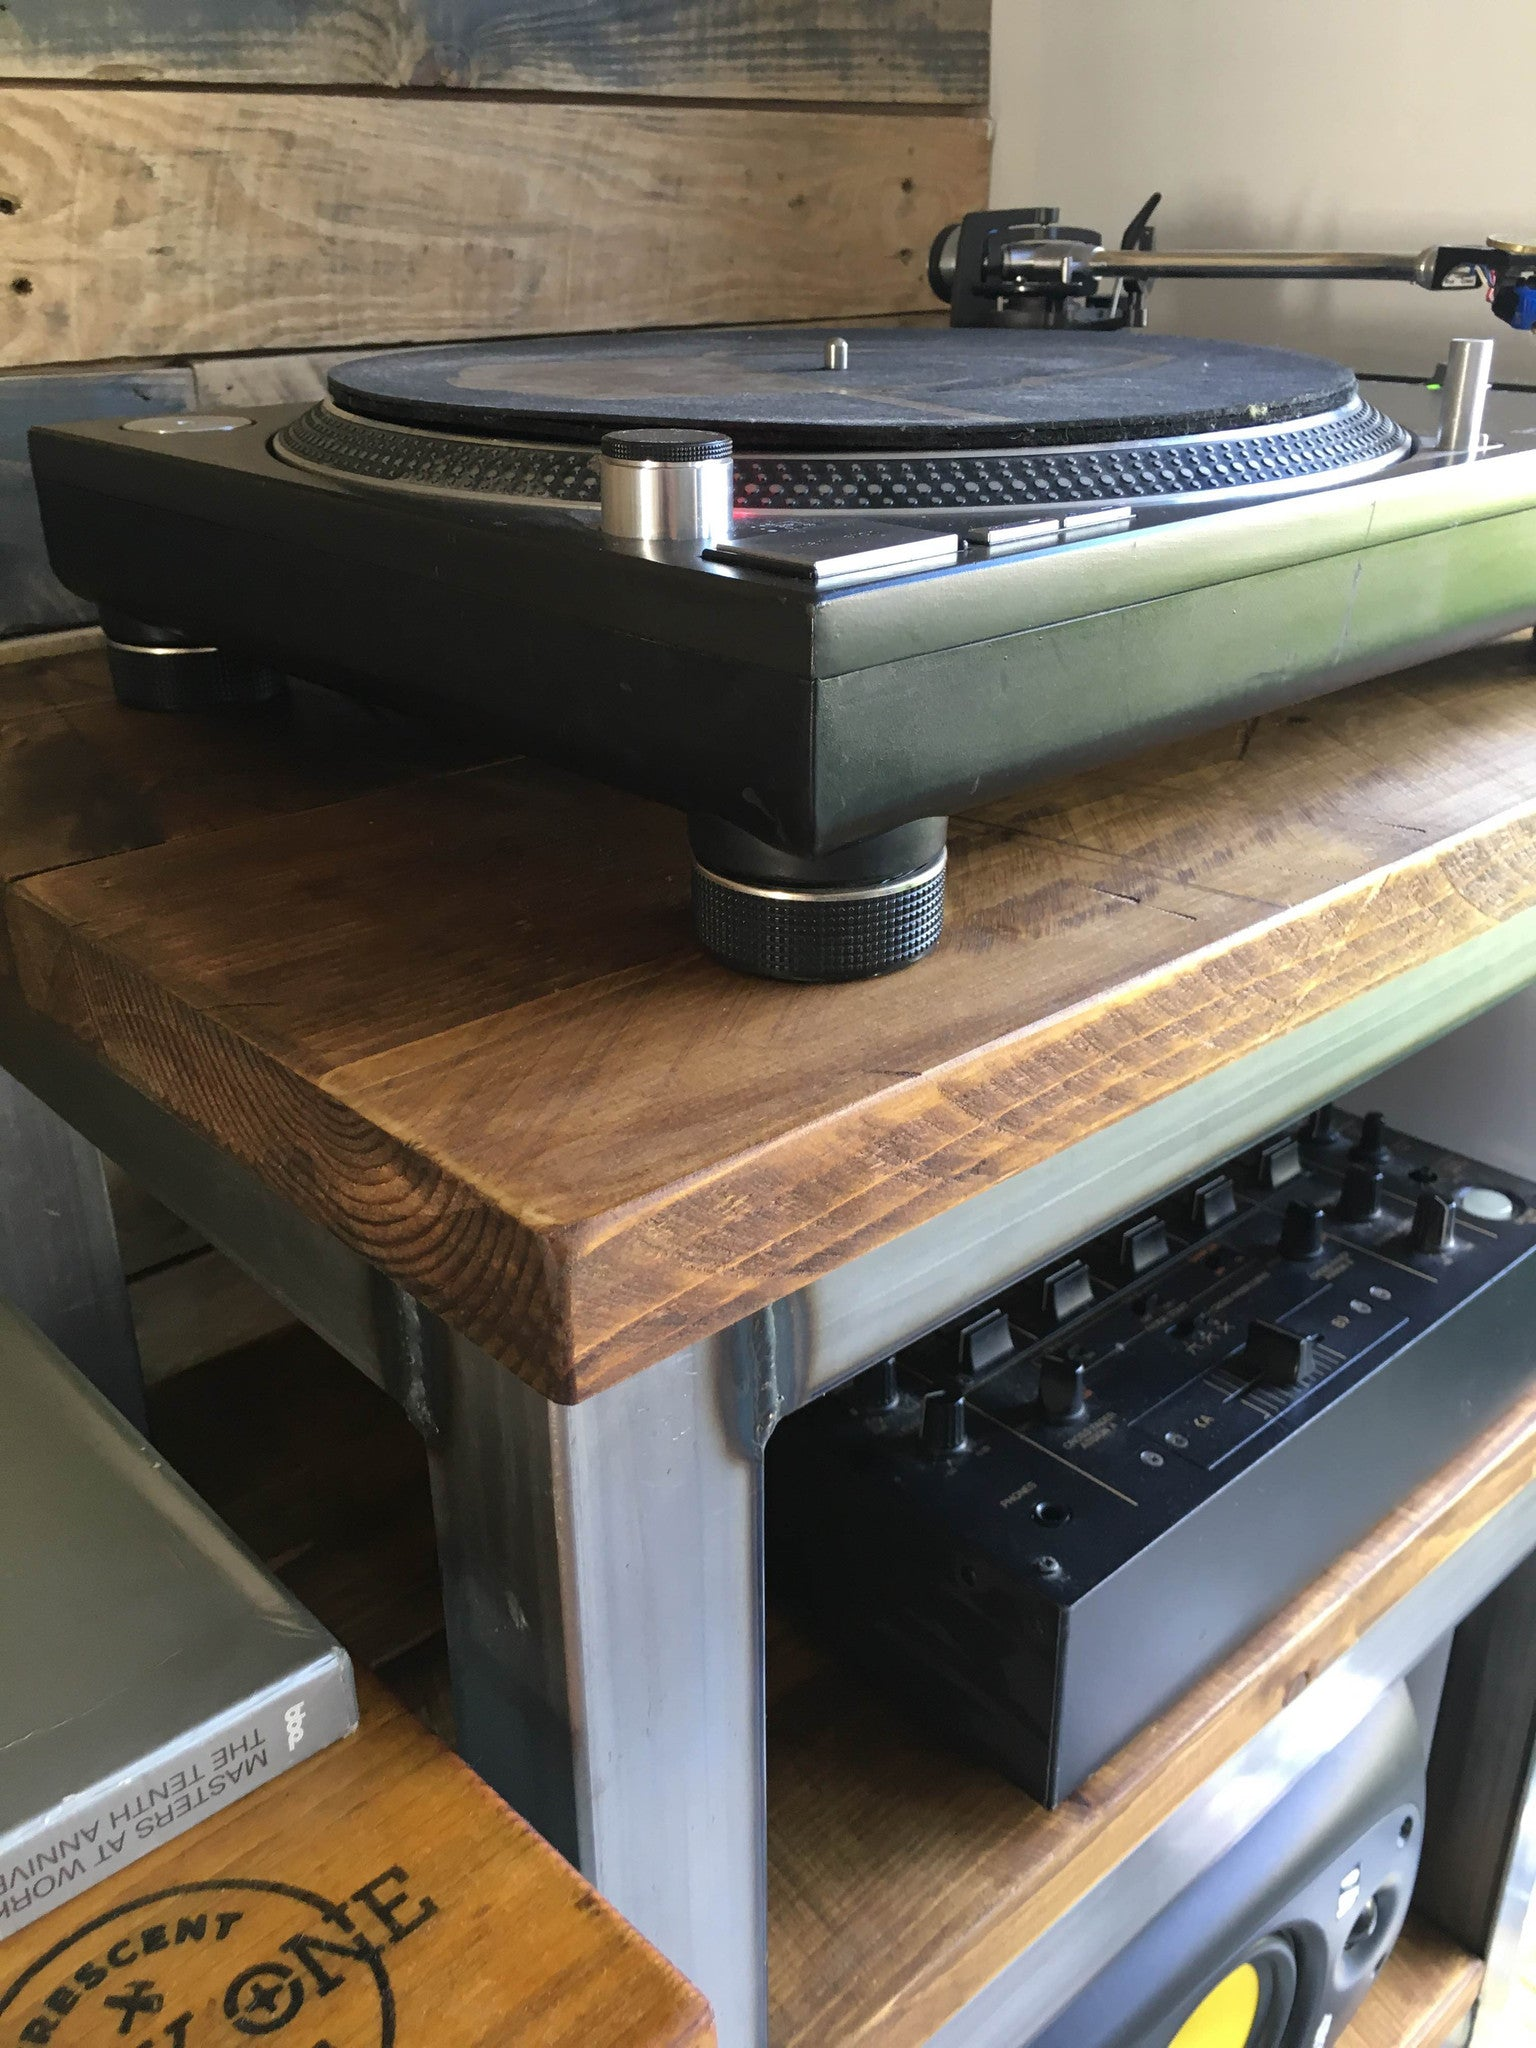 C51 Builds a home for the Industry standard Technics 1210.